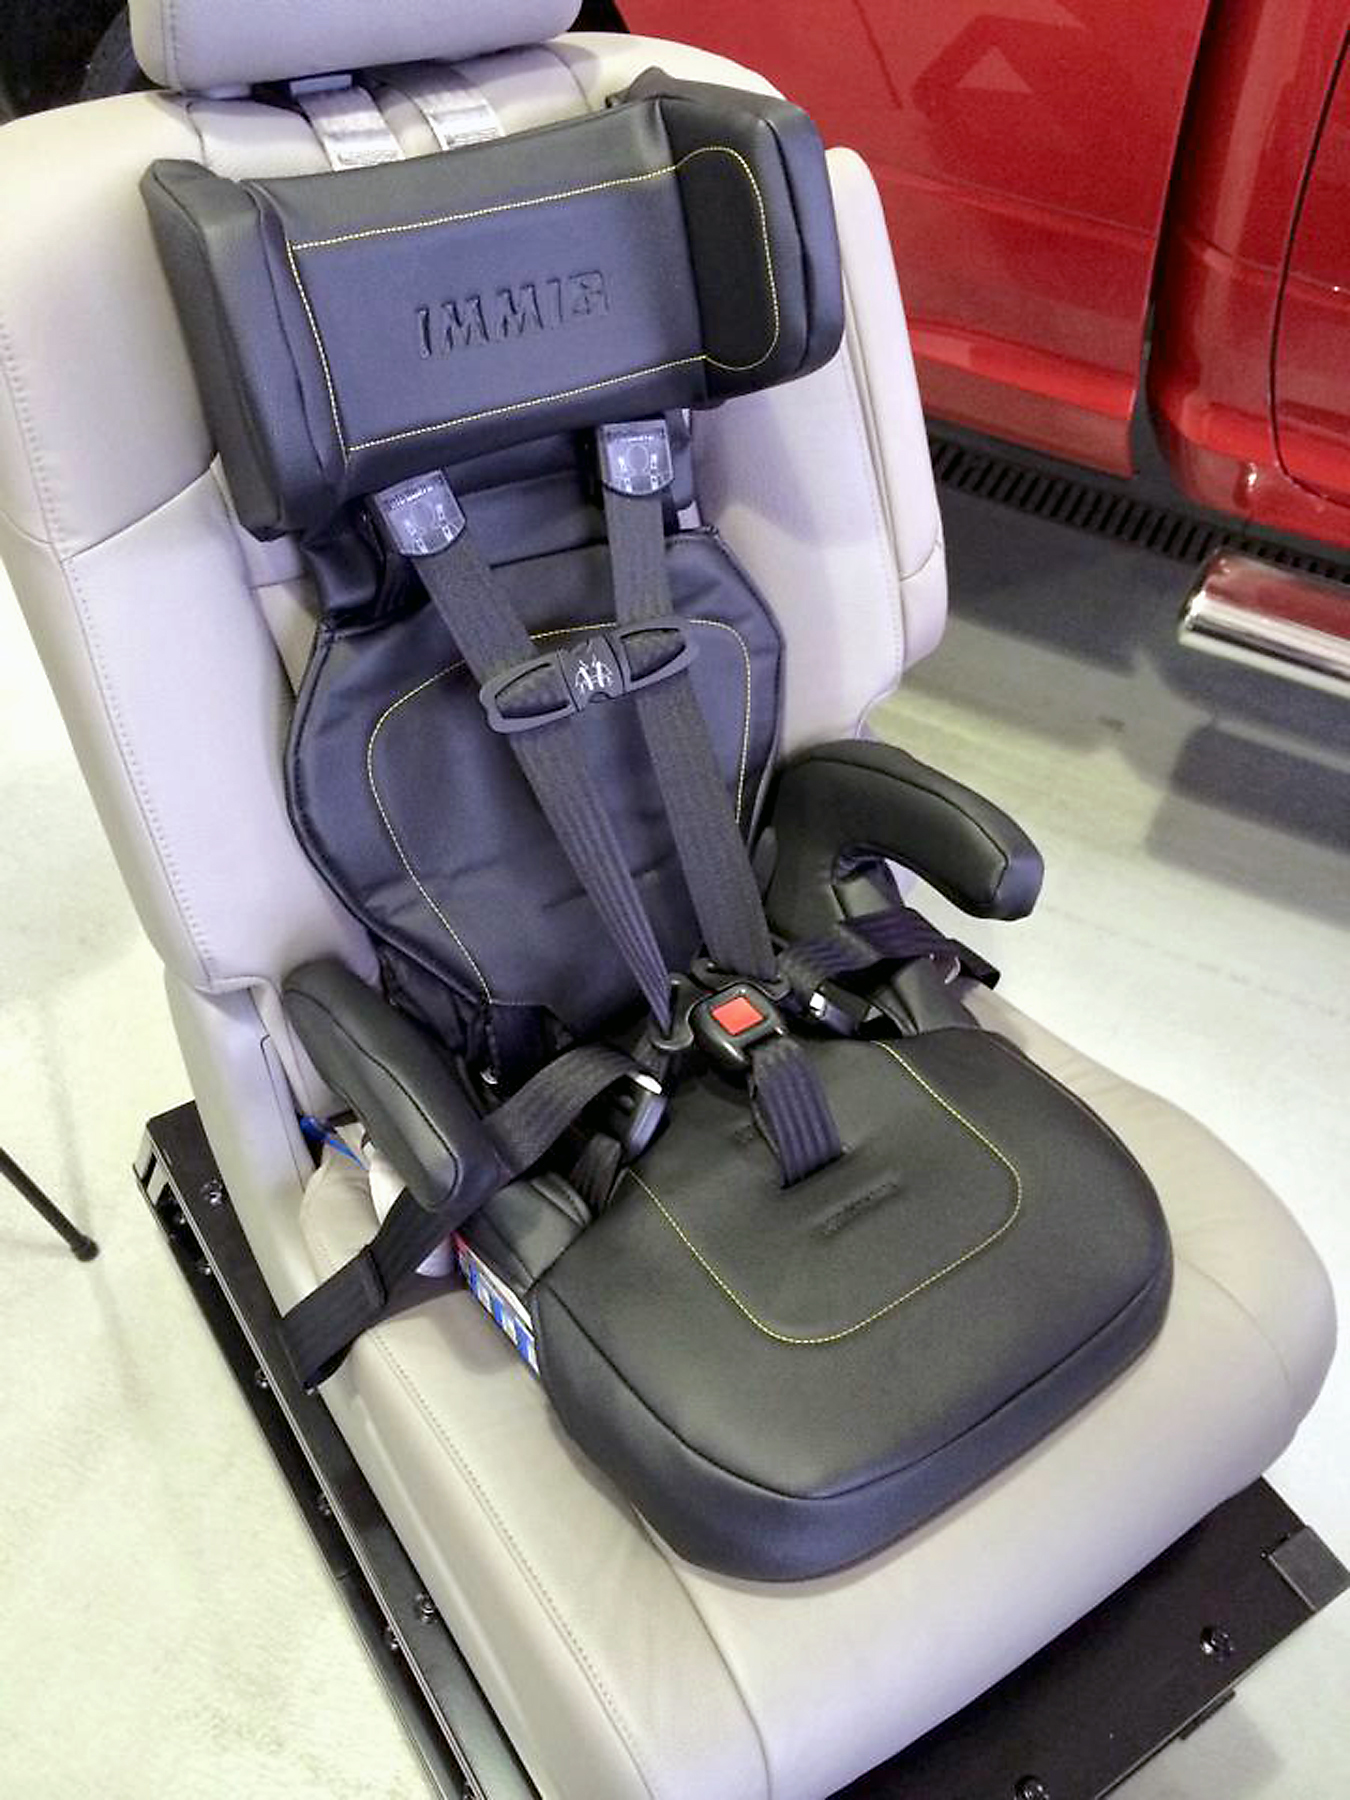 Westfield Emergency Services Receive New Car Seats For Children From IMMI